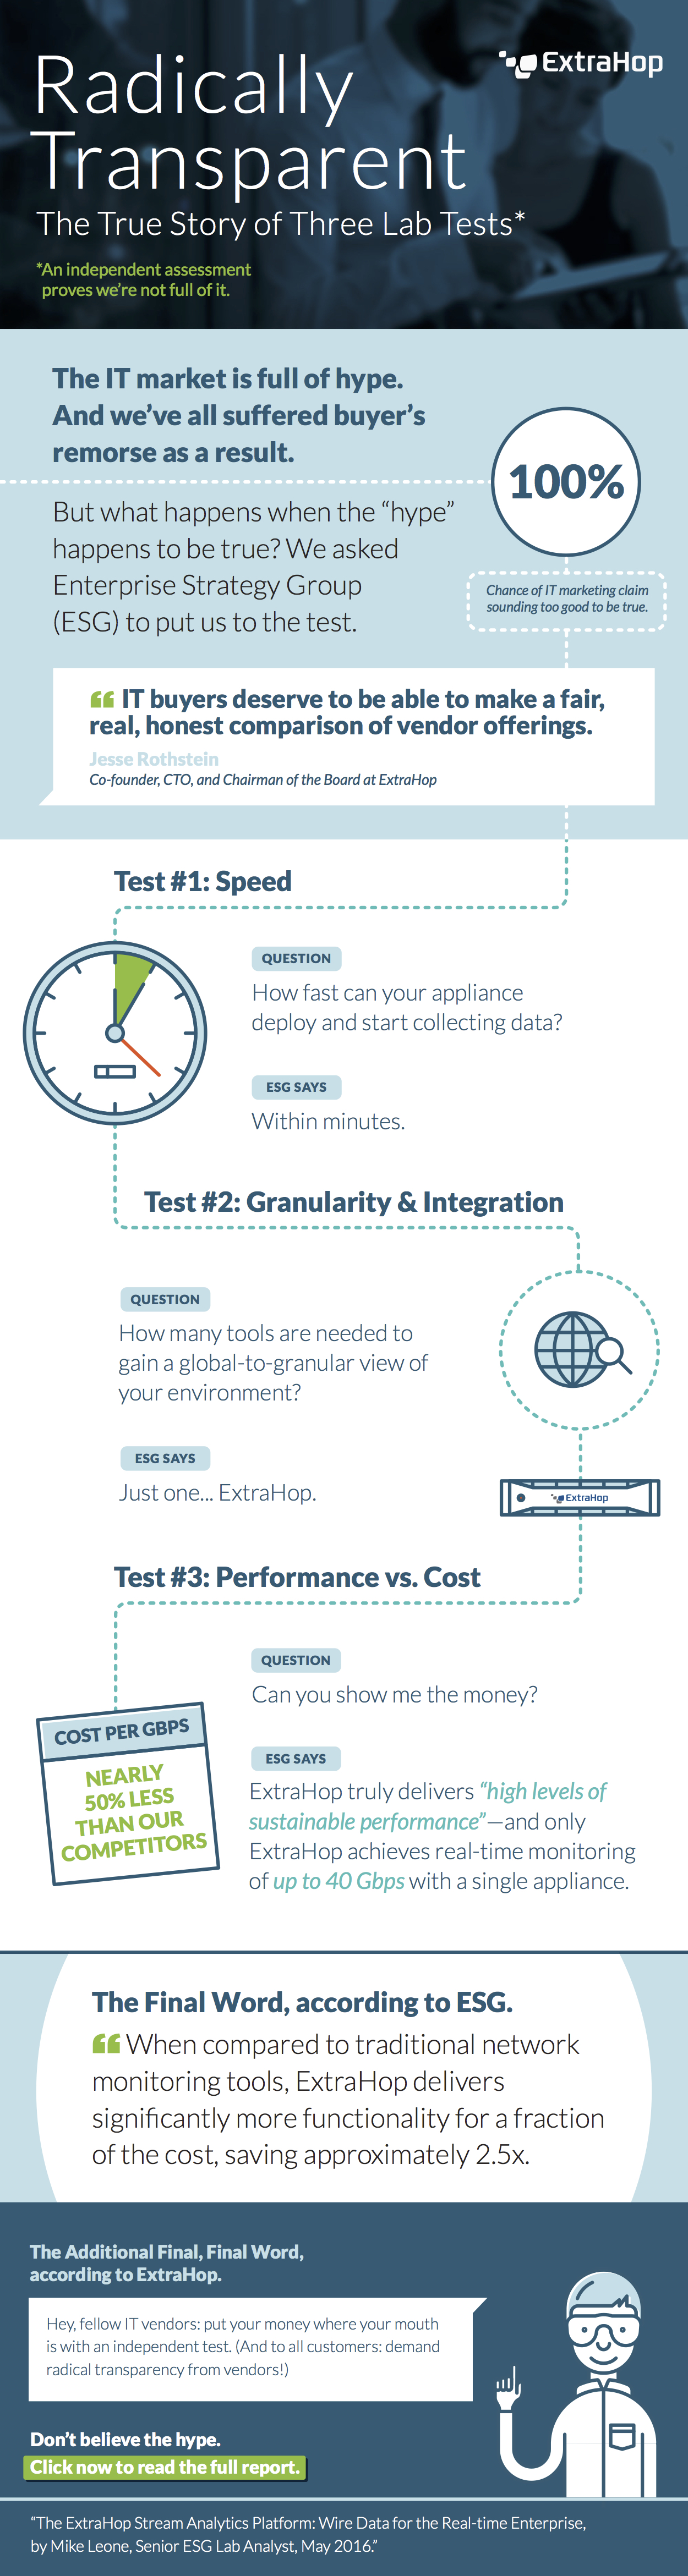 ExtraHop lab validation infographic